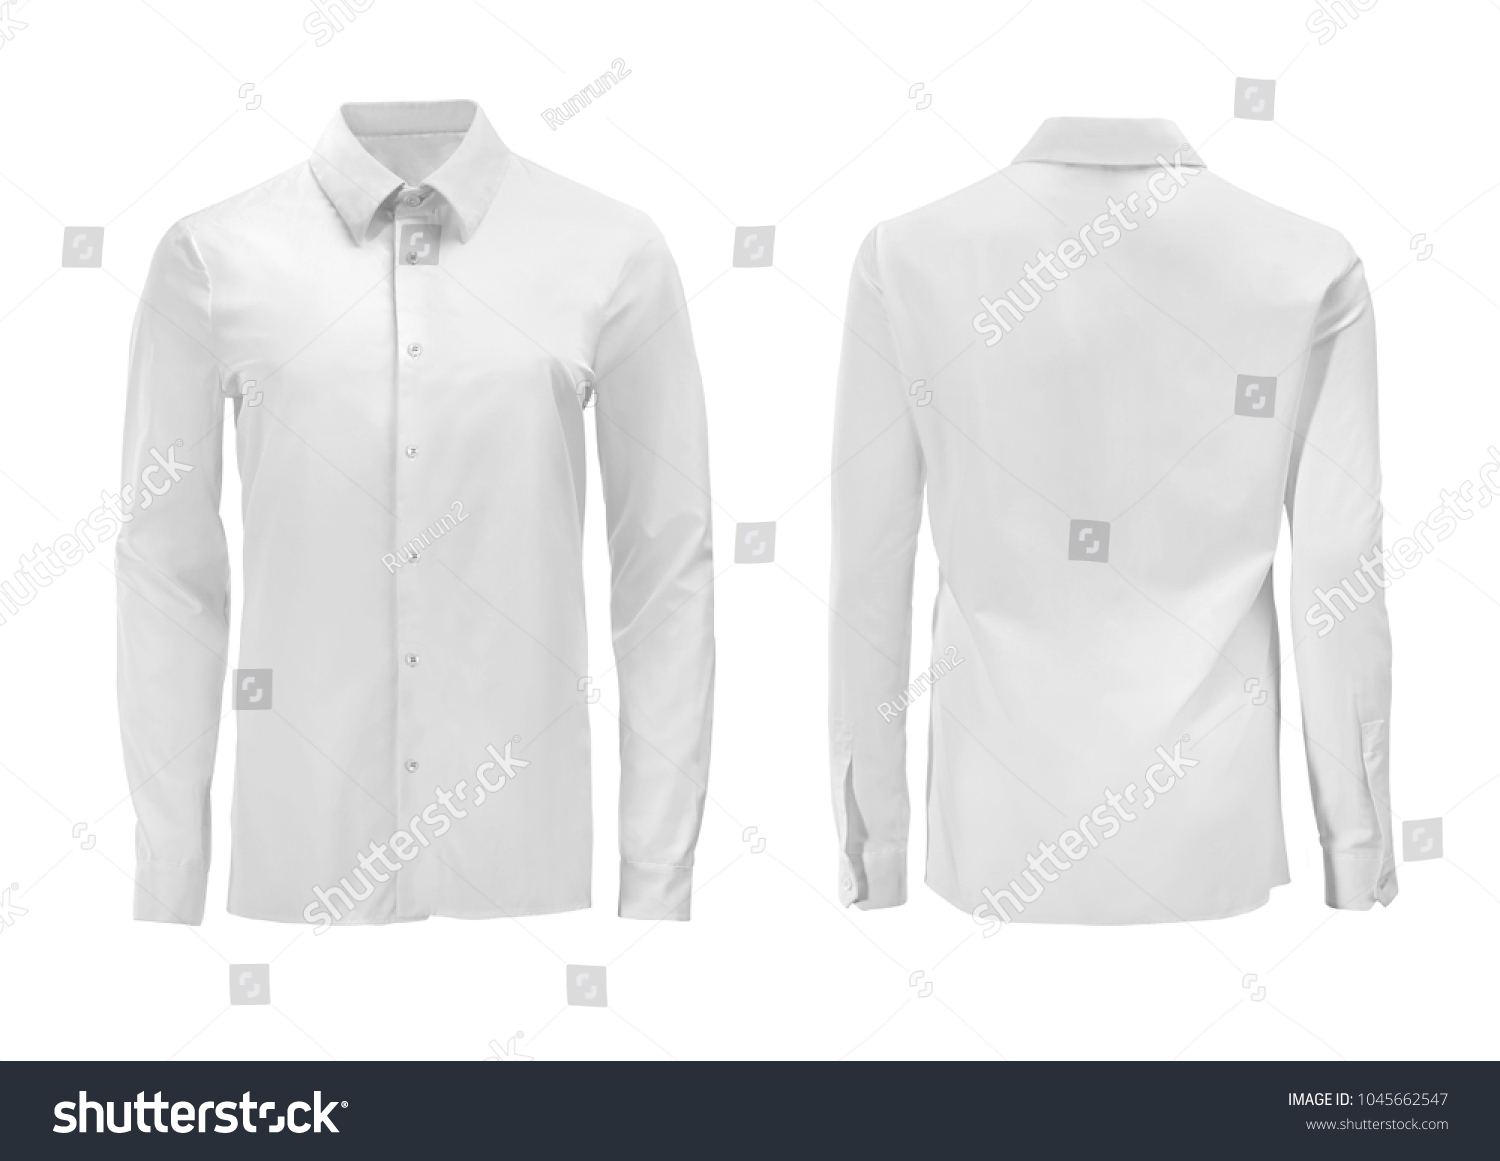 White color formal shirt with button down collar isolated on white